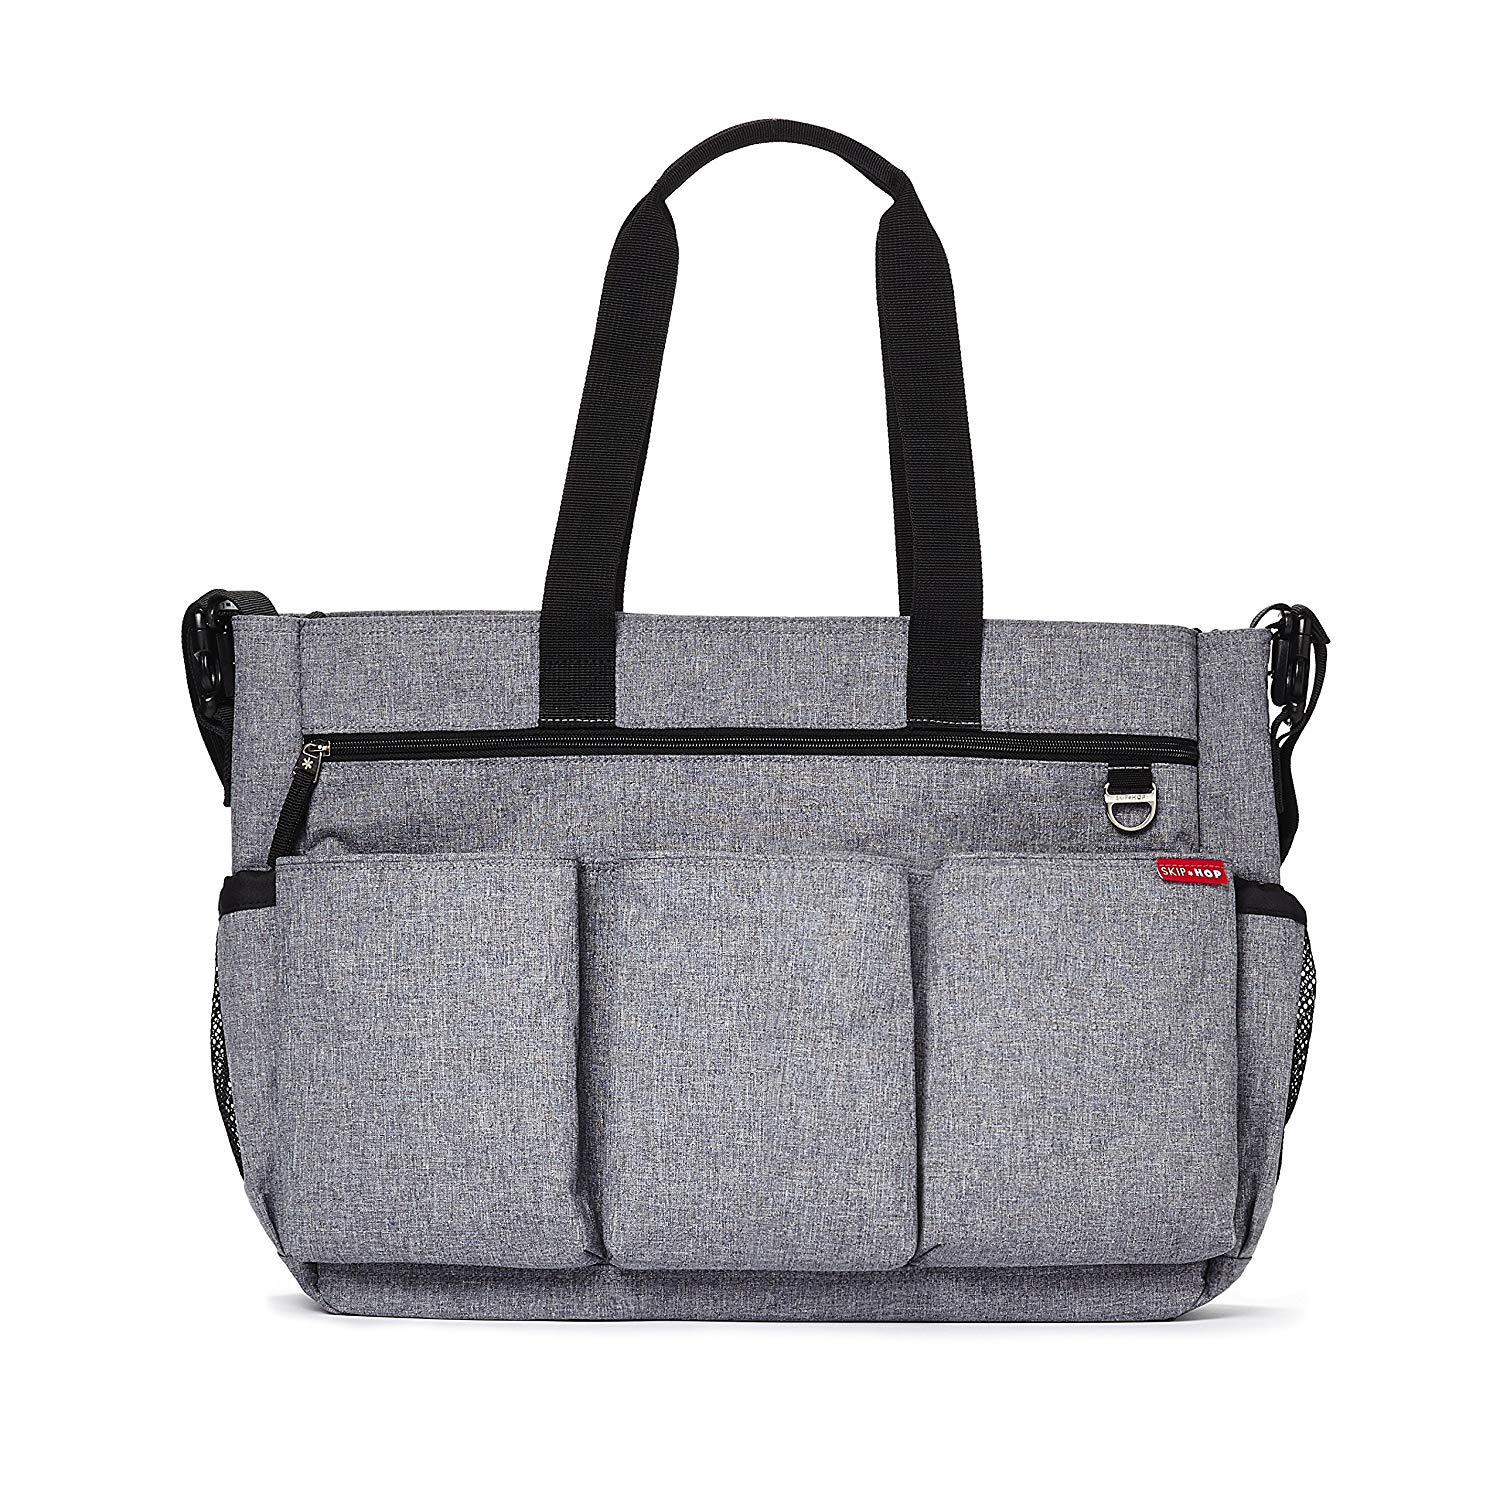 Skip Hop Duo Double Diaper Bag Tote